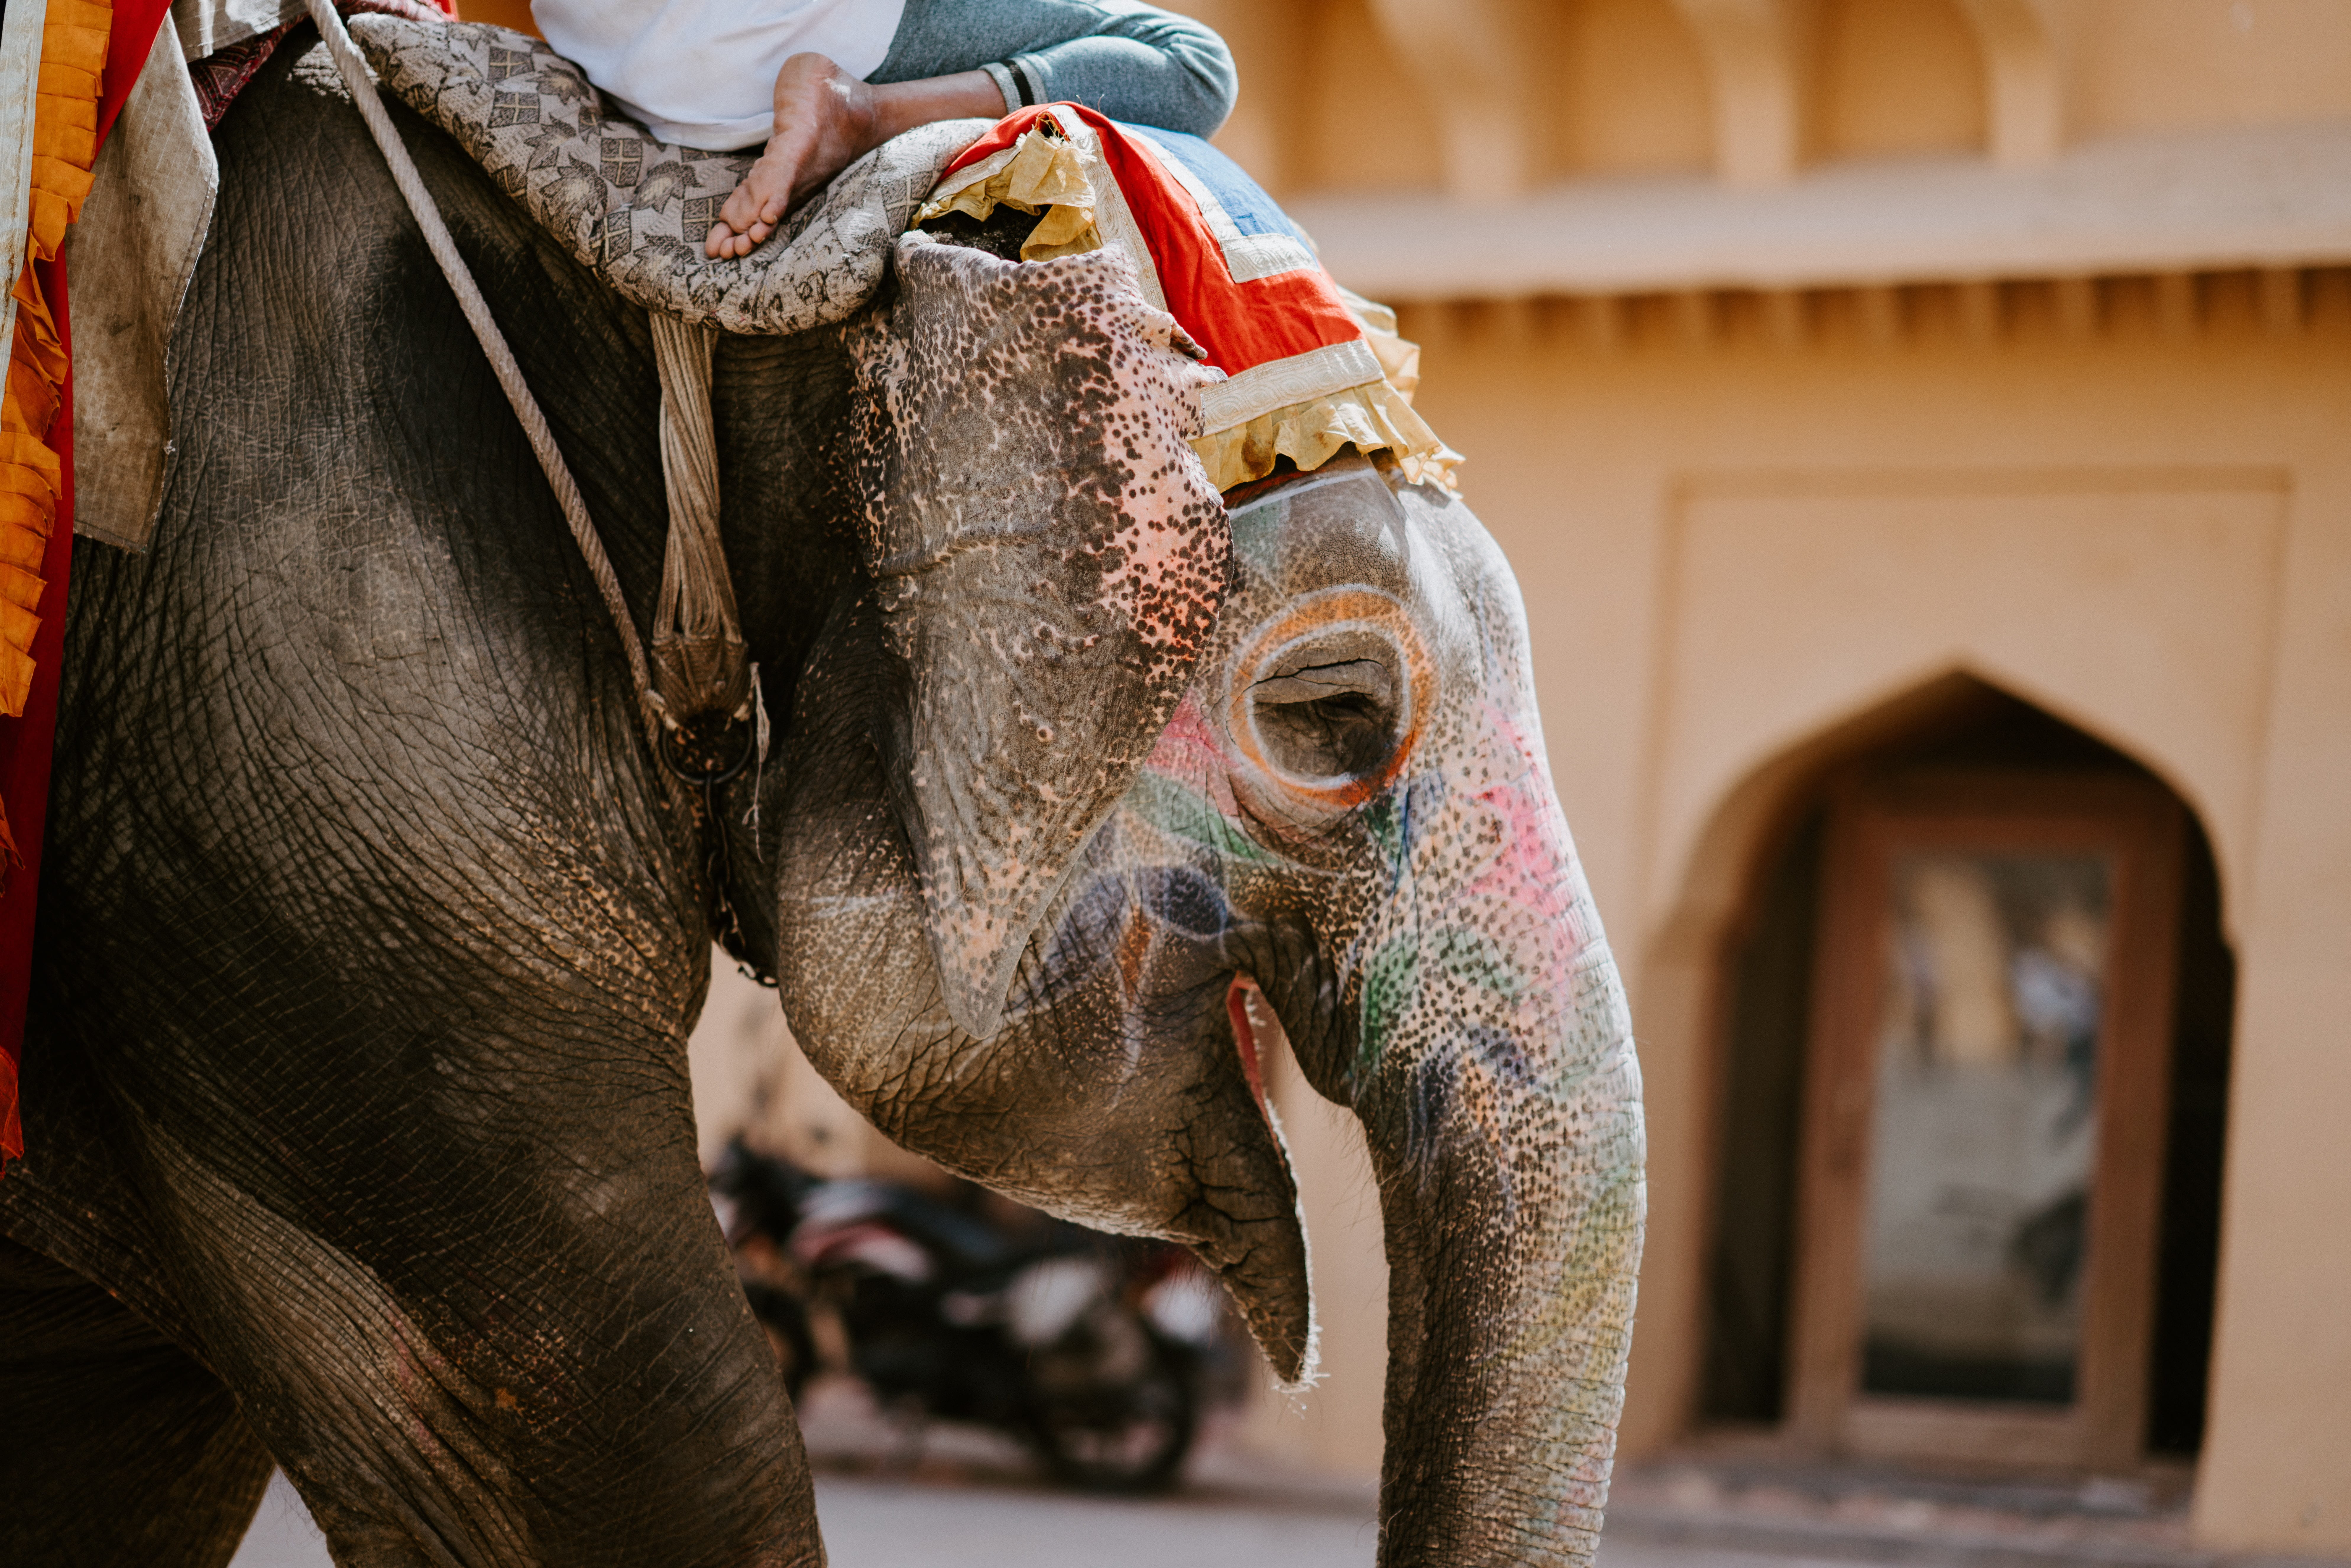 Man riding a painted elephant